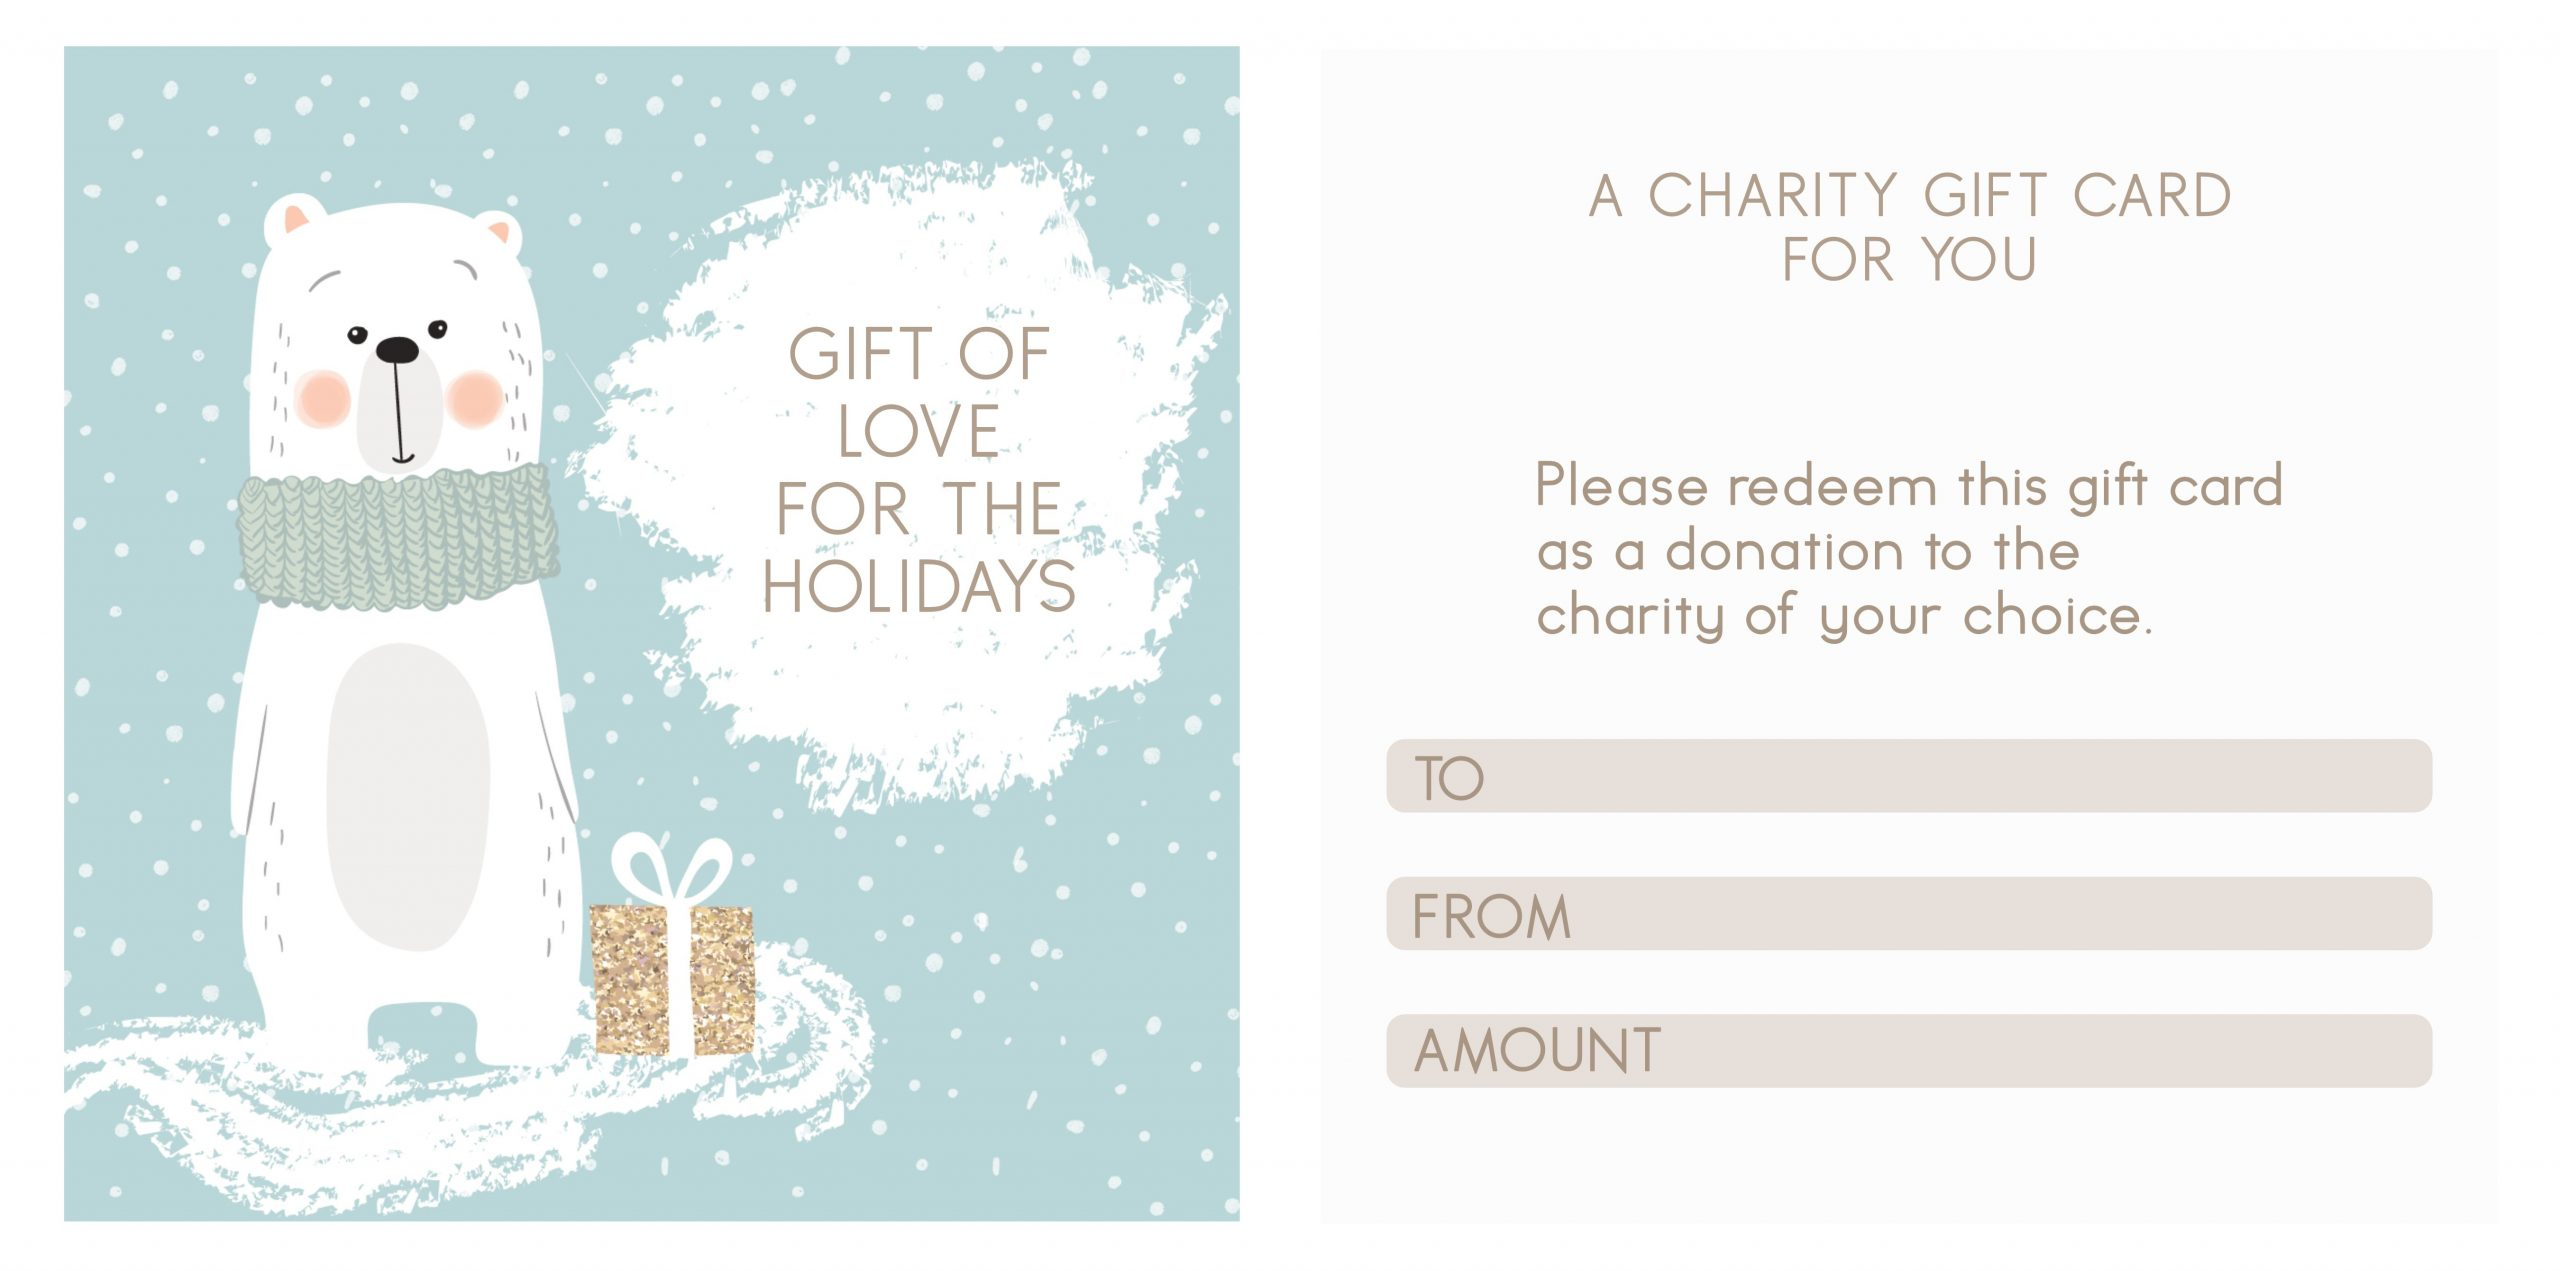 Print this template for your own DIY Charity Choice Gift Card for the holidays. I use these for stocking stuffers and allow the kids to choose their favorite charity to donate to after the holidays.